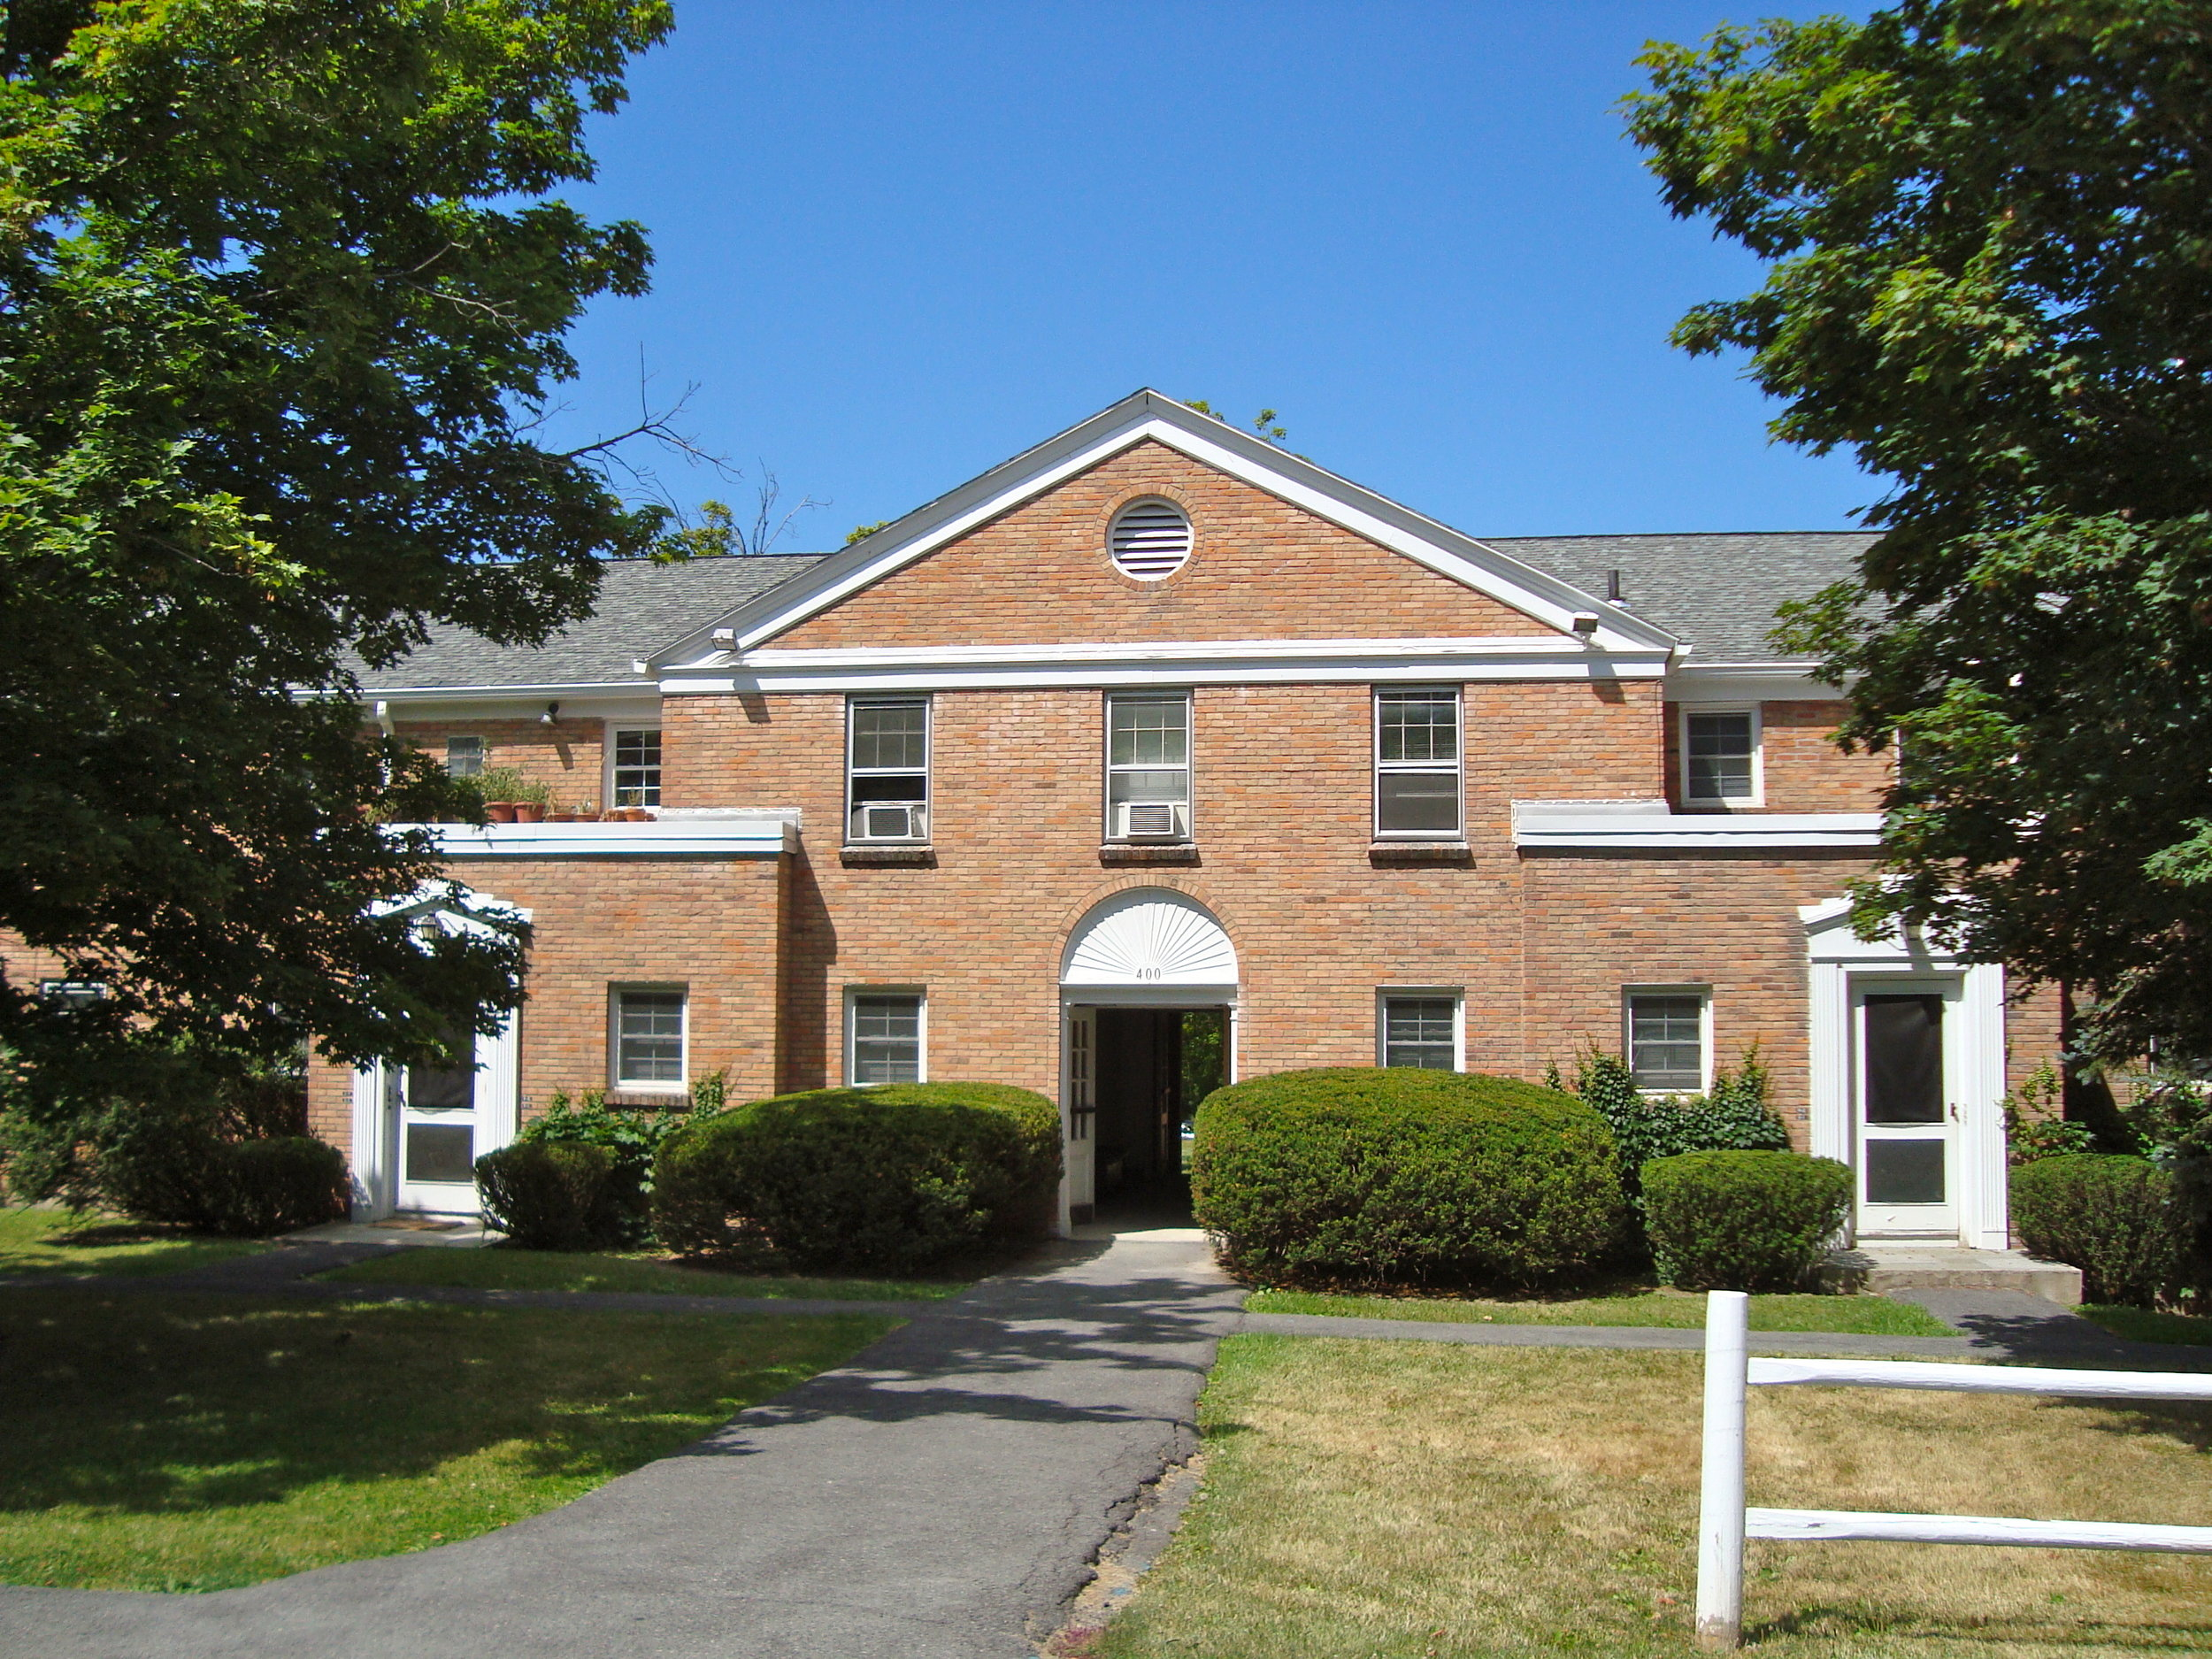 400 Triphammer Rd. Ithaca, NY 14850